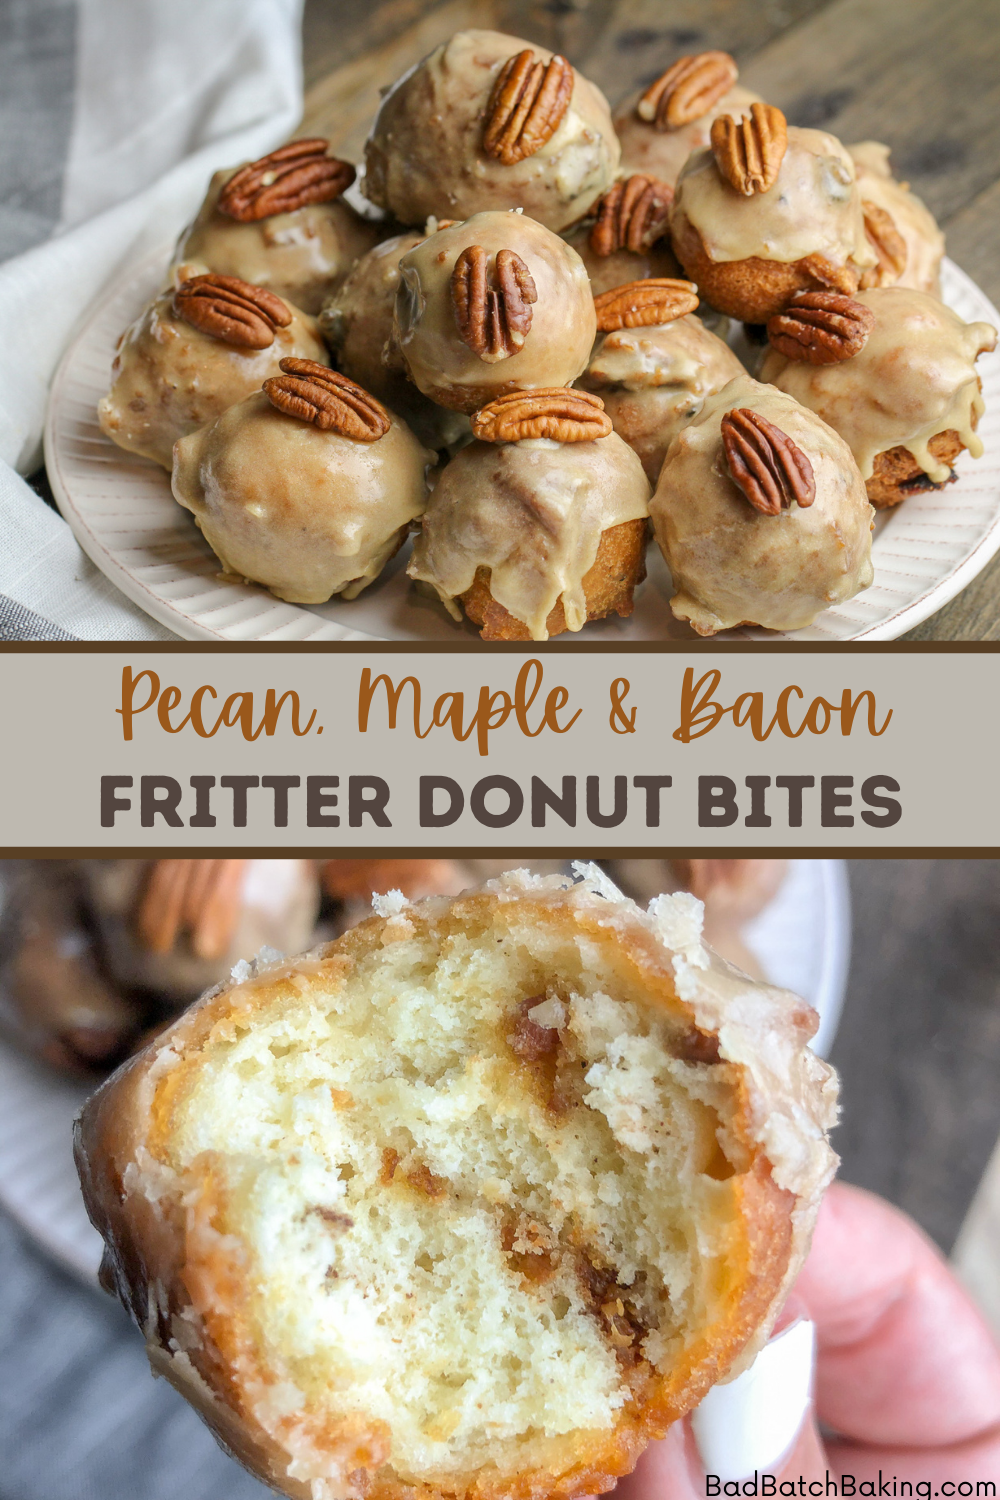 Pecan, Maple and Bacon Fritter Donut Bites